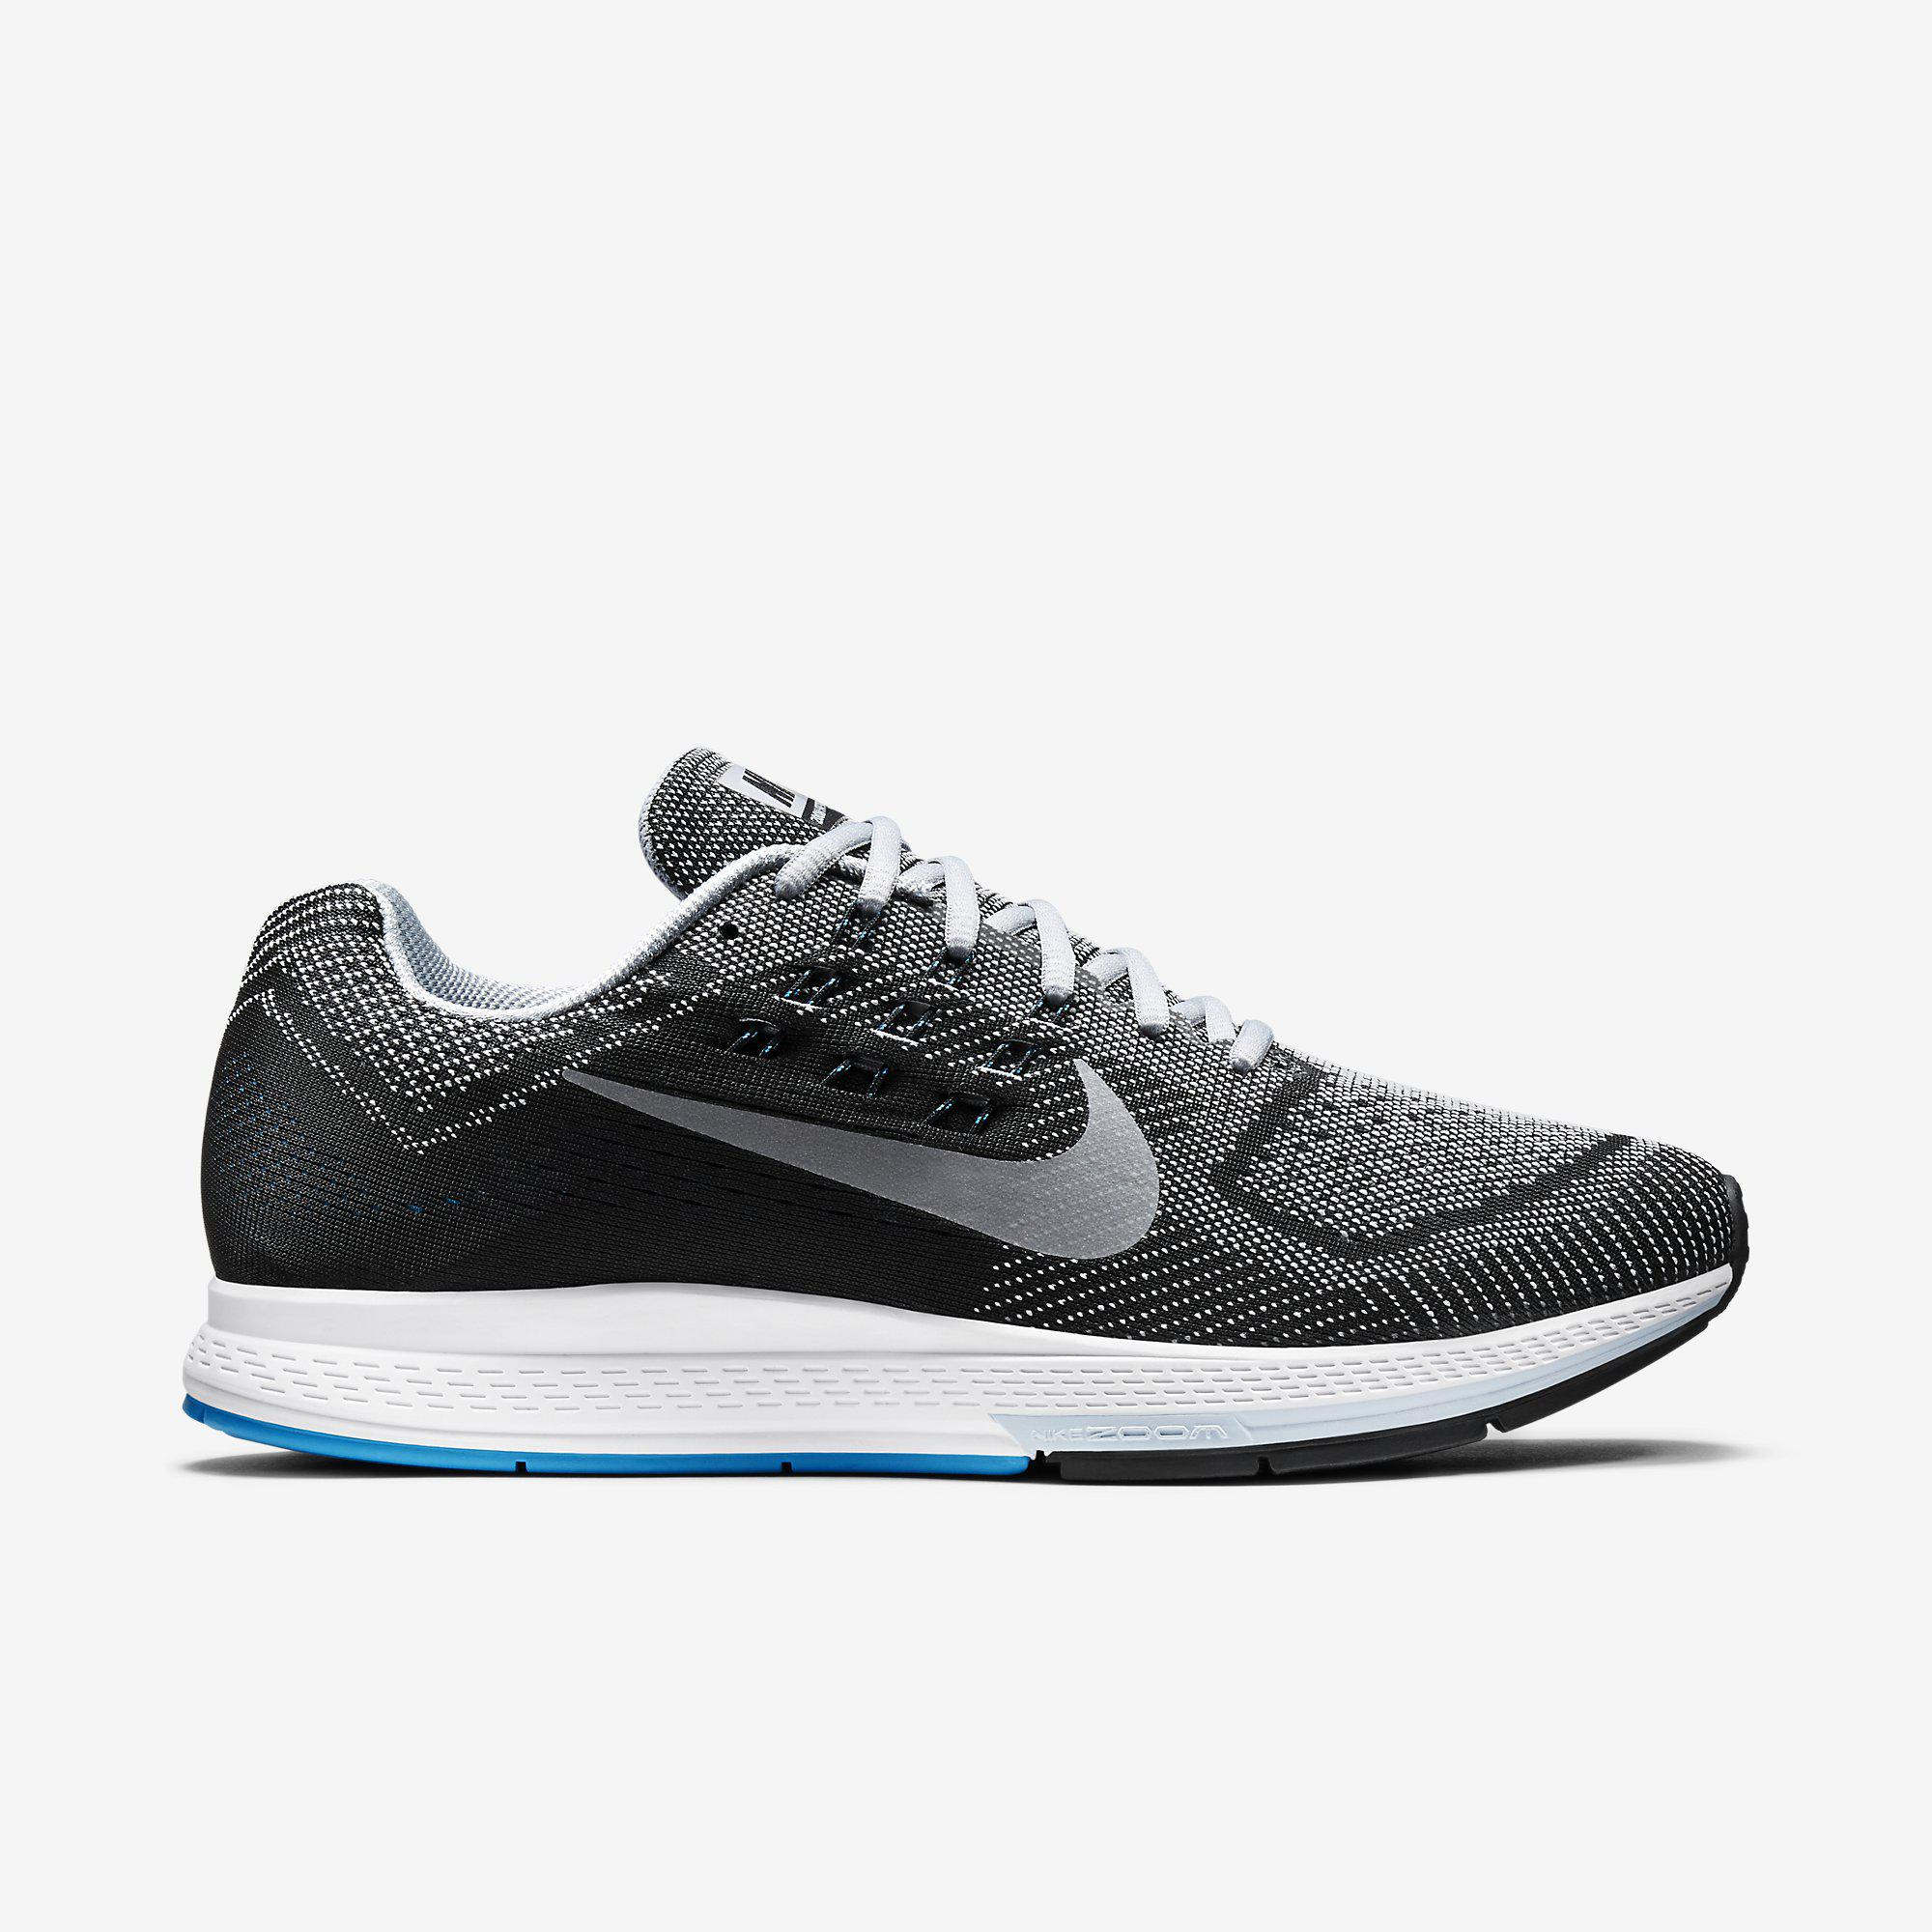 Nike Mens Air Zoom Structure 18 Running Shoes - Wolf Grey/Black